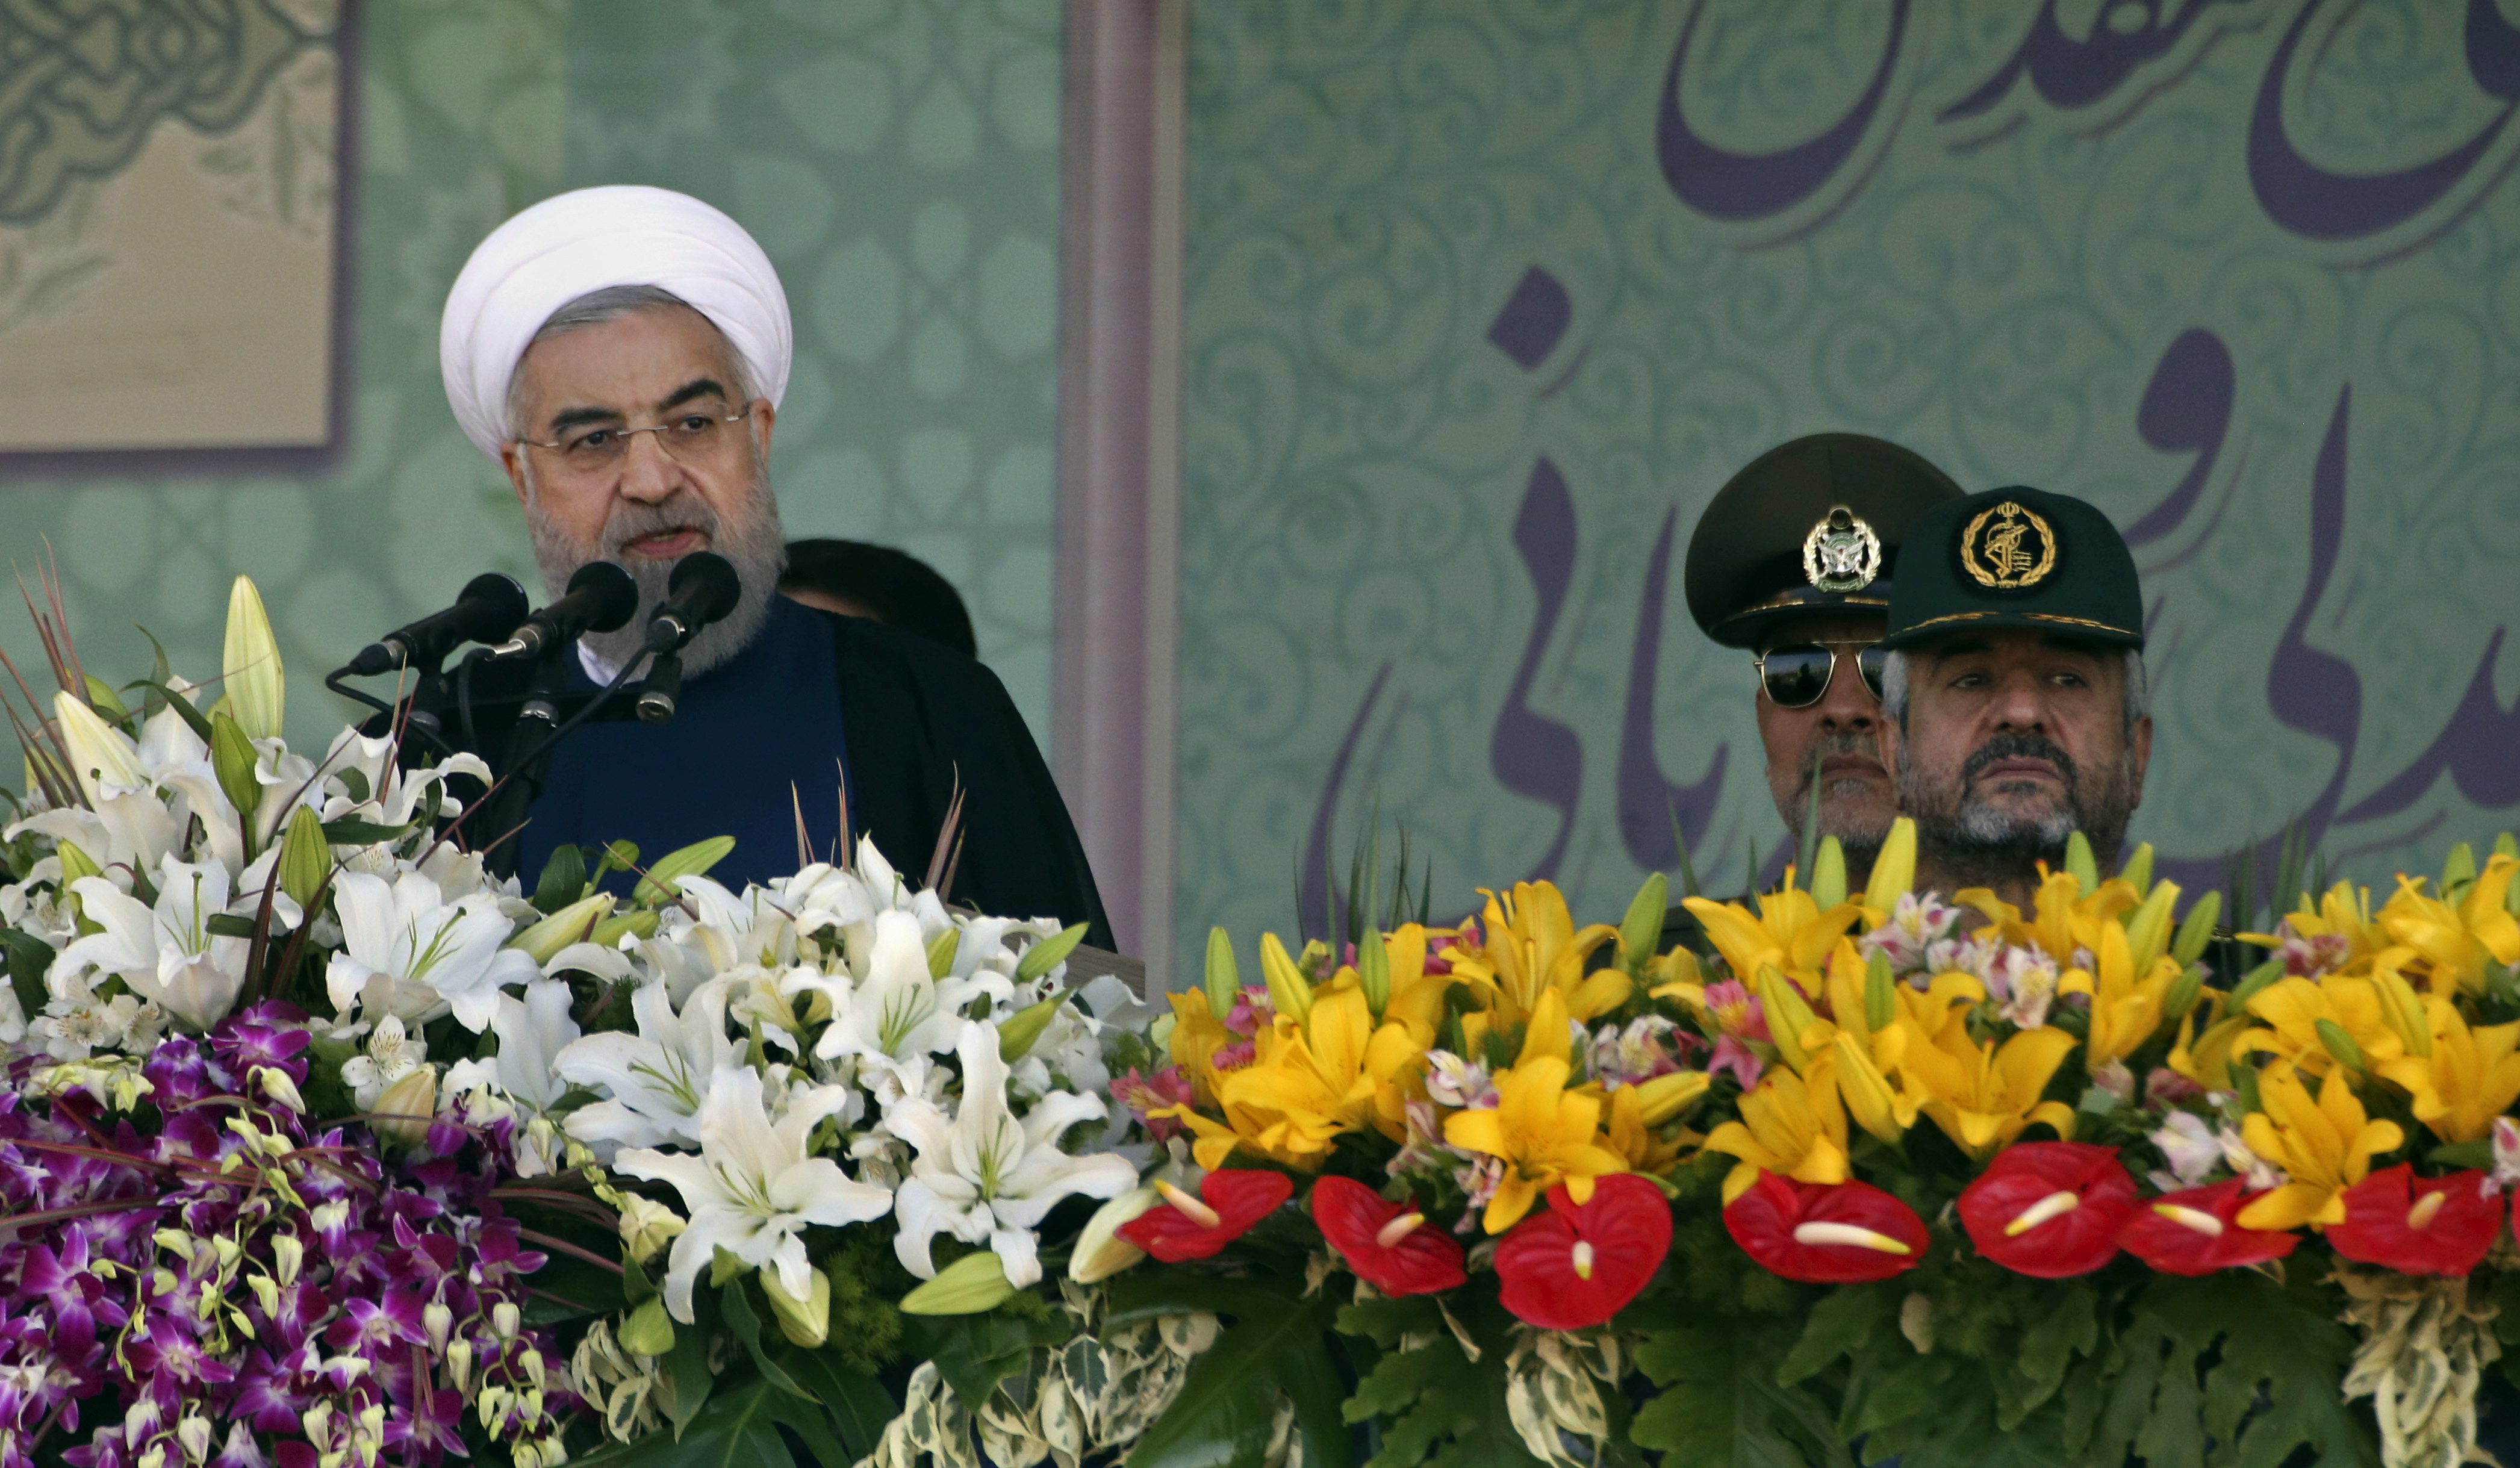 Iranian President Hassan Rouhani, left, speaks at a military parade marking the 35th anniversary of Iraq's 1980 invasion of Iran, attended by Revolutionary Guard commander Mohammad Ali Jafari, right,in front of the shrine of the late revolutionary founder, Ayatollah Khomeini, just outside Tehran, Iran, Tuesday, Sept. 22, 2015. President Rouhani said Tuesday his countryu0092s military is the most reliable force to take on u0093terrorists in the regionu0094 - a reference to the extremist Islamic State group. (AP Photo/Vahid Salemi)